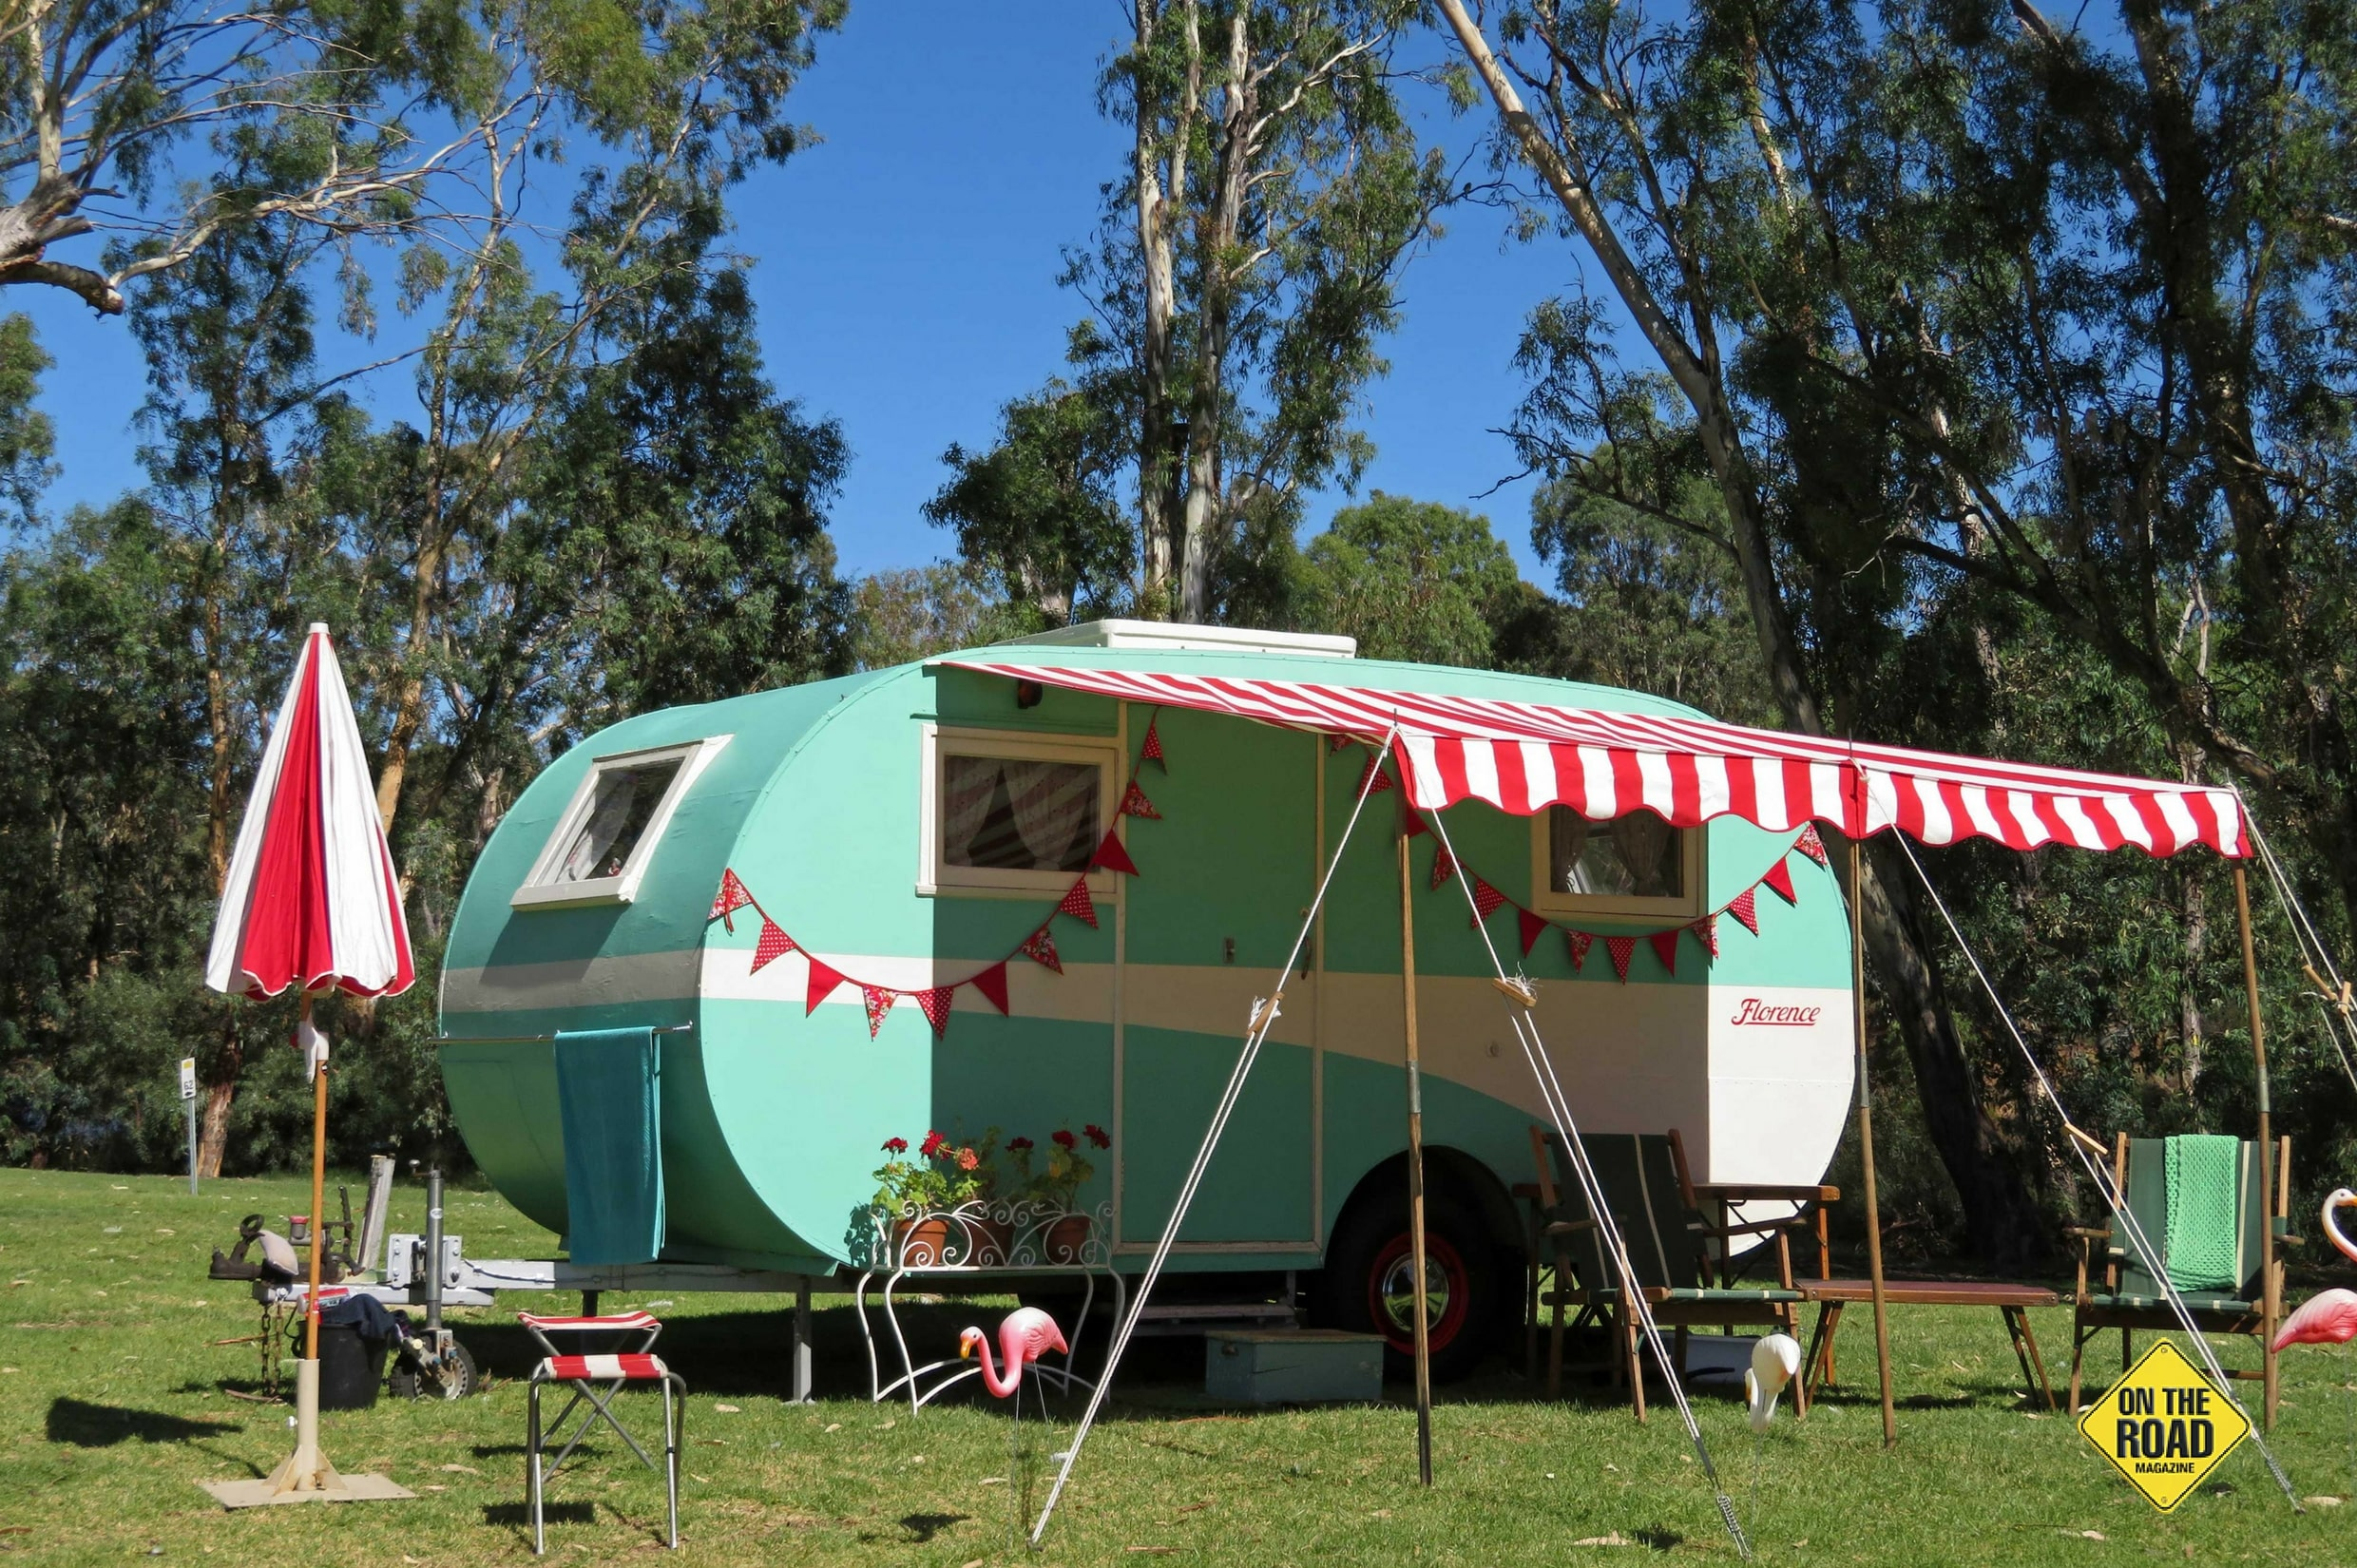 This 1940s home built wooden caravan belongs to Marcus and Alison of Bendigo who organised the event